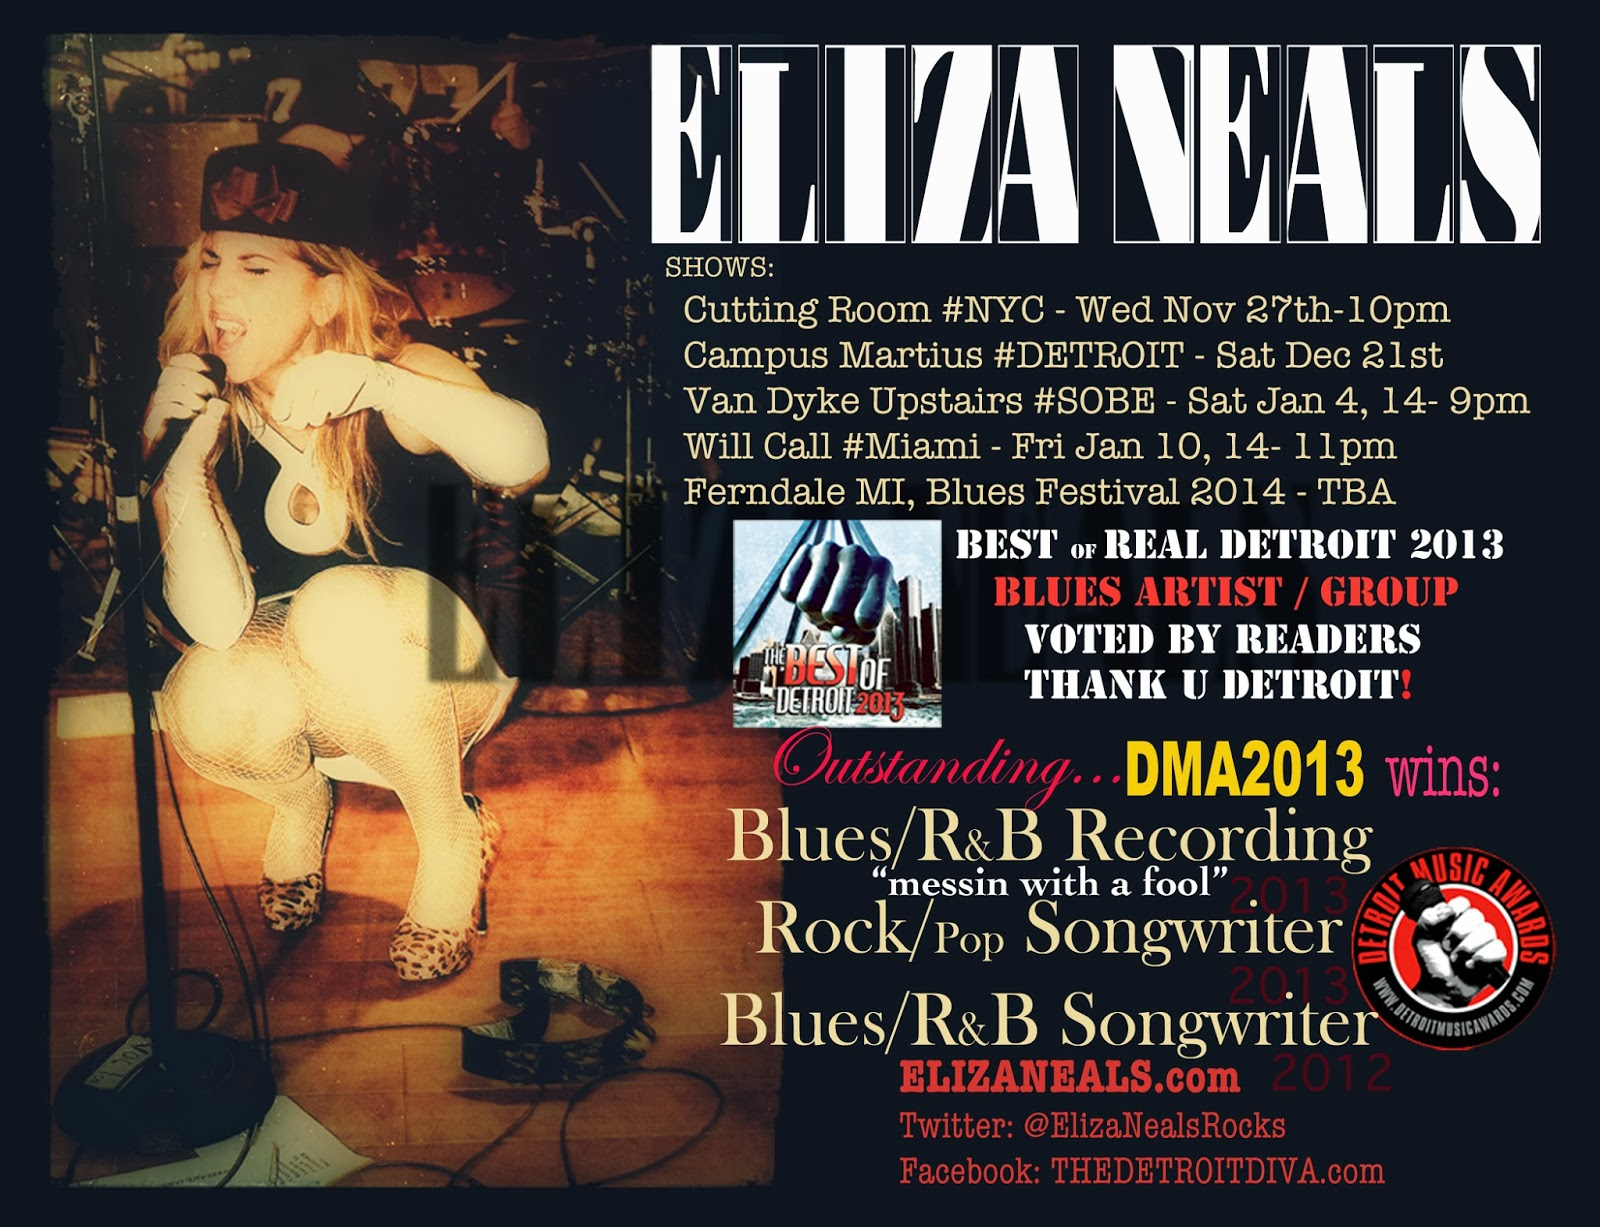 http://tickets.thecuttingroomnyc.com/event/408913-eliza-neals-new-york/